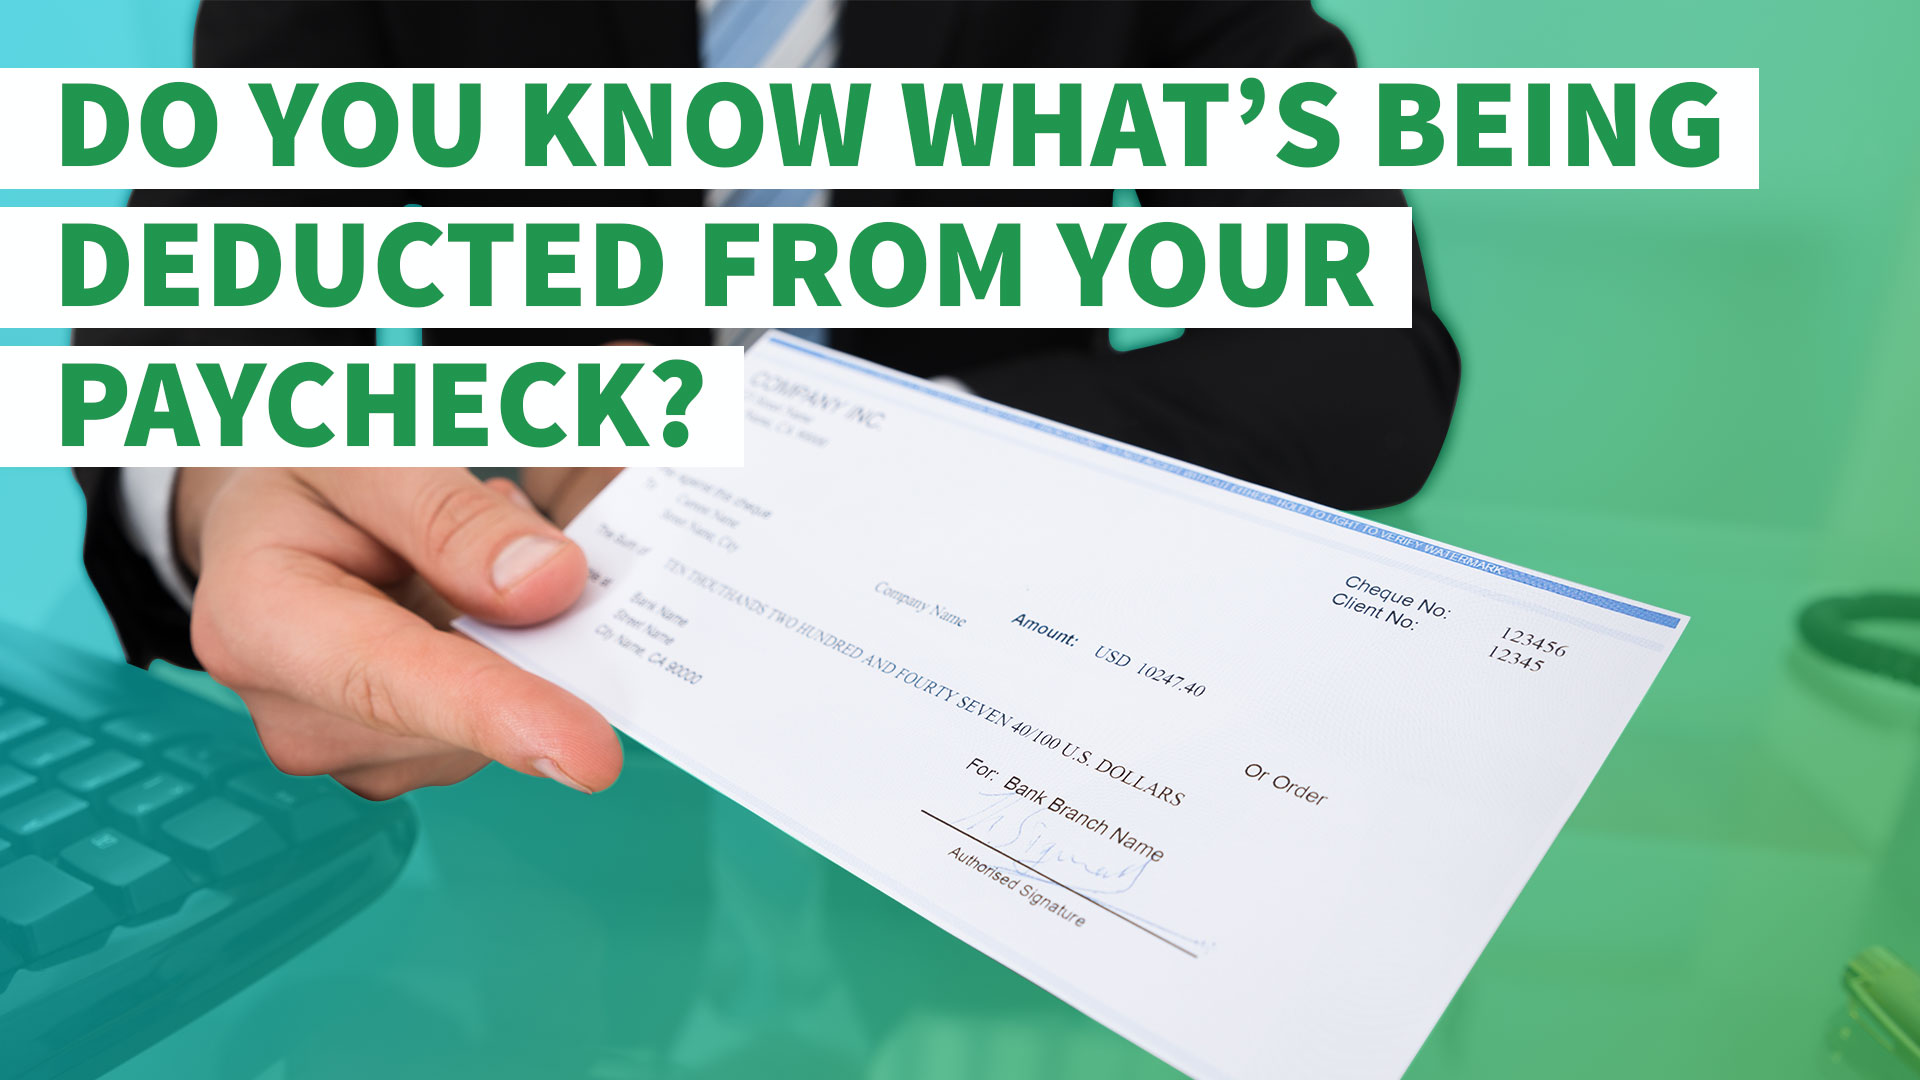 Why was no federal income tax withheld from my paycheck?